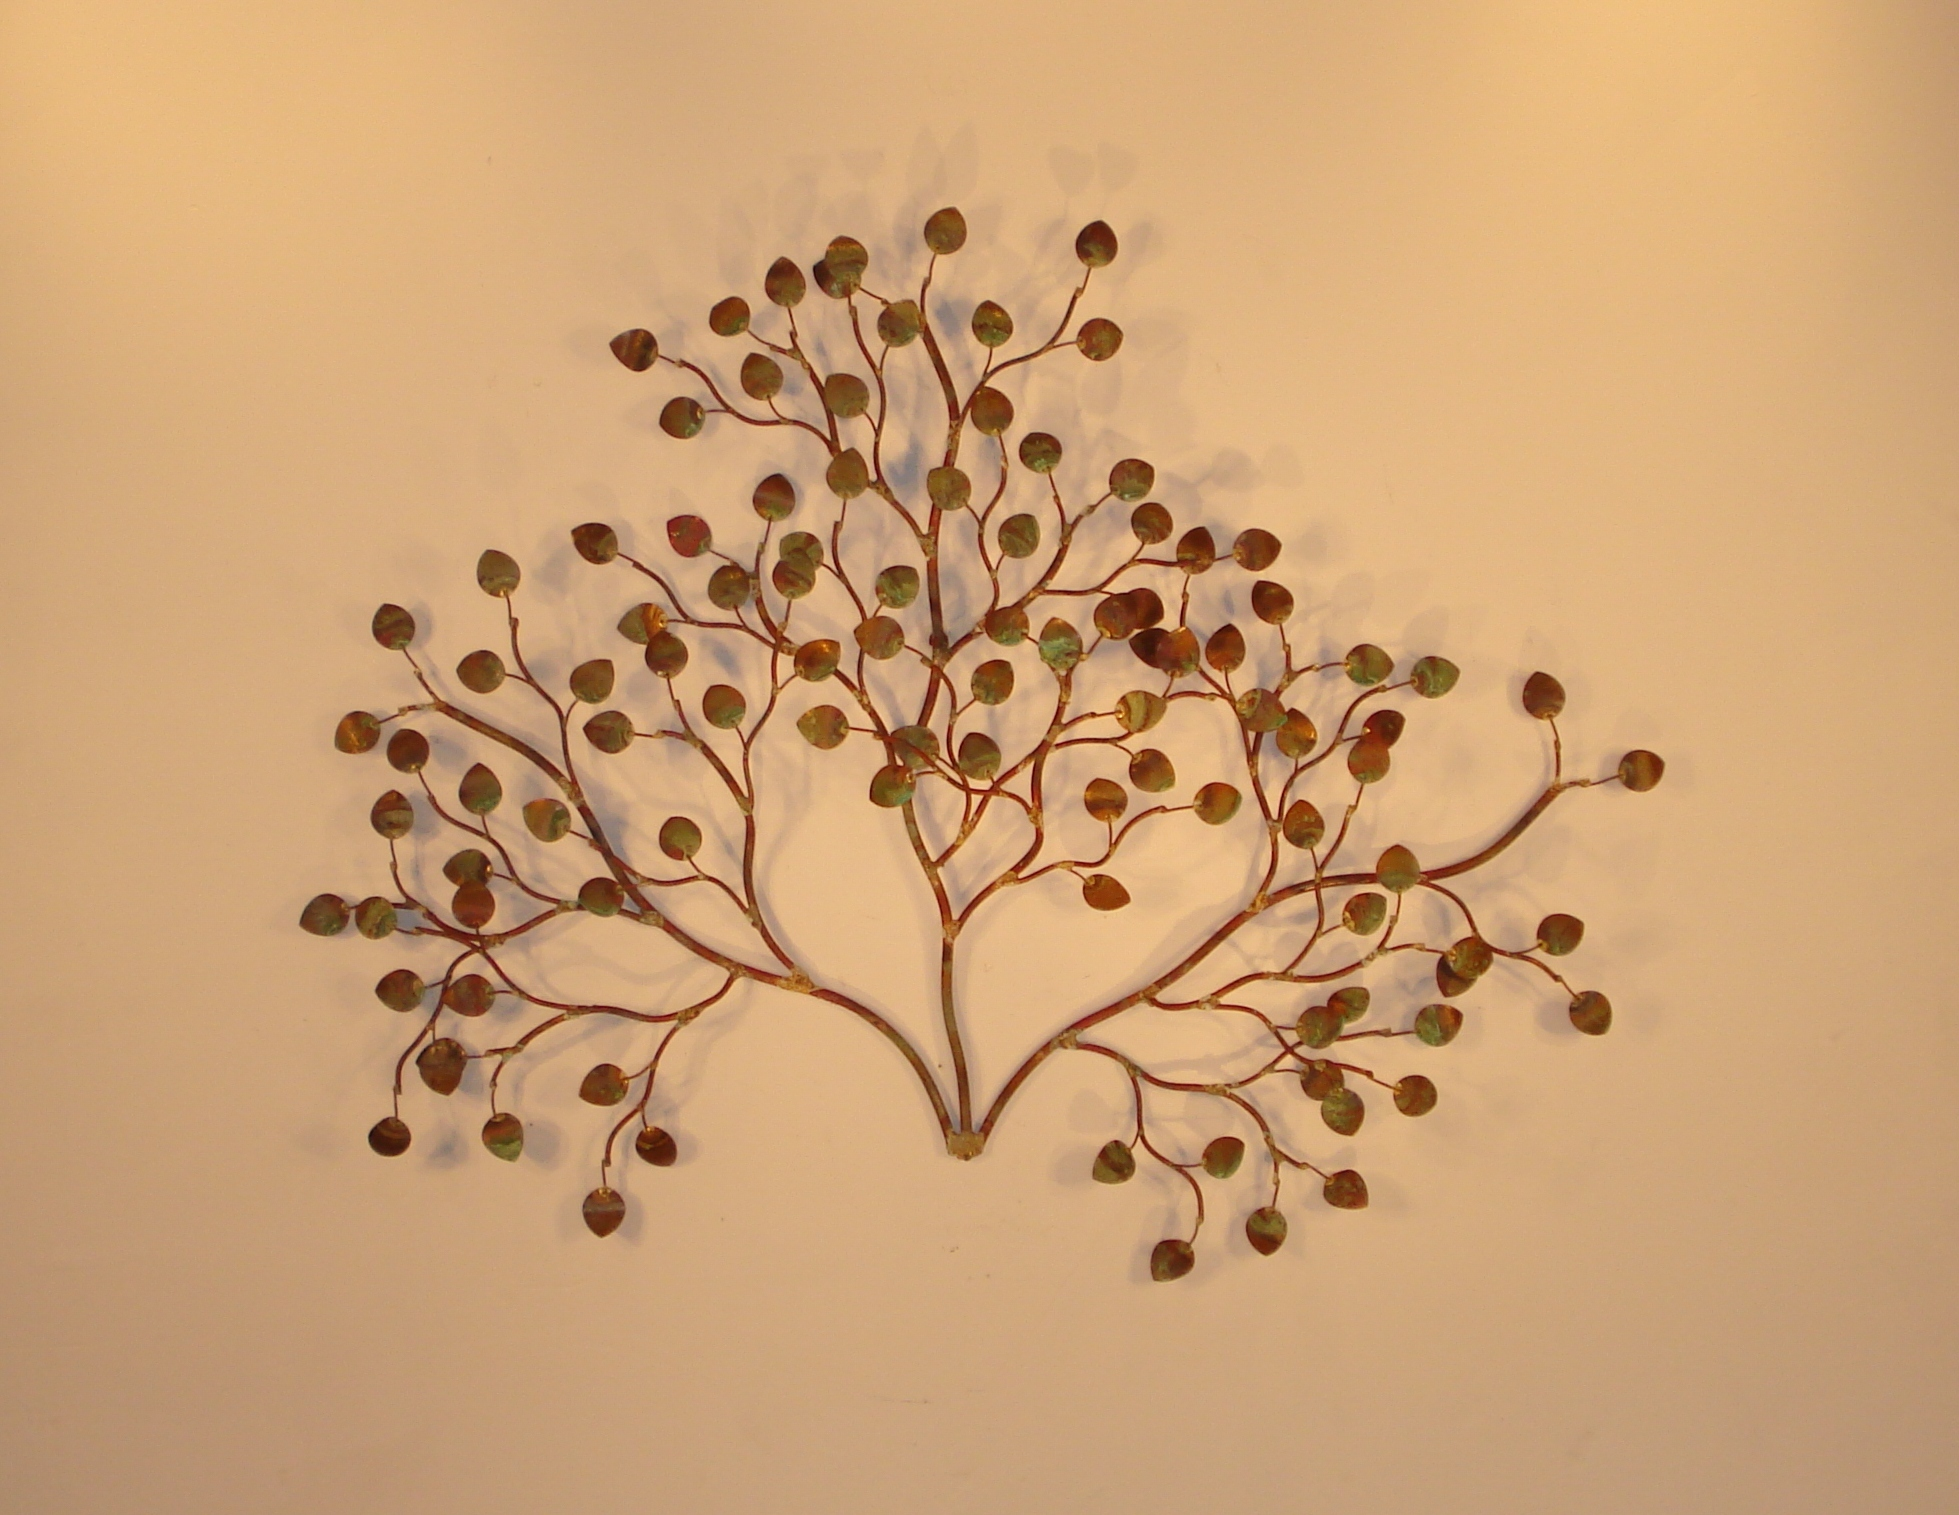 Metal Sculptures And Art Wall Decor: Metal Wall Art And Wall Décor